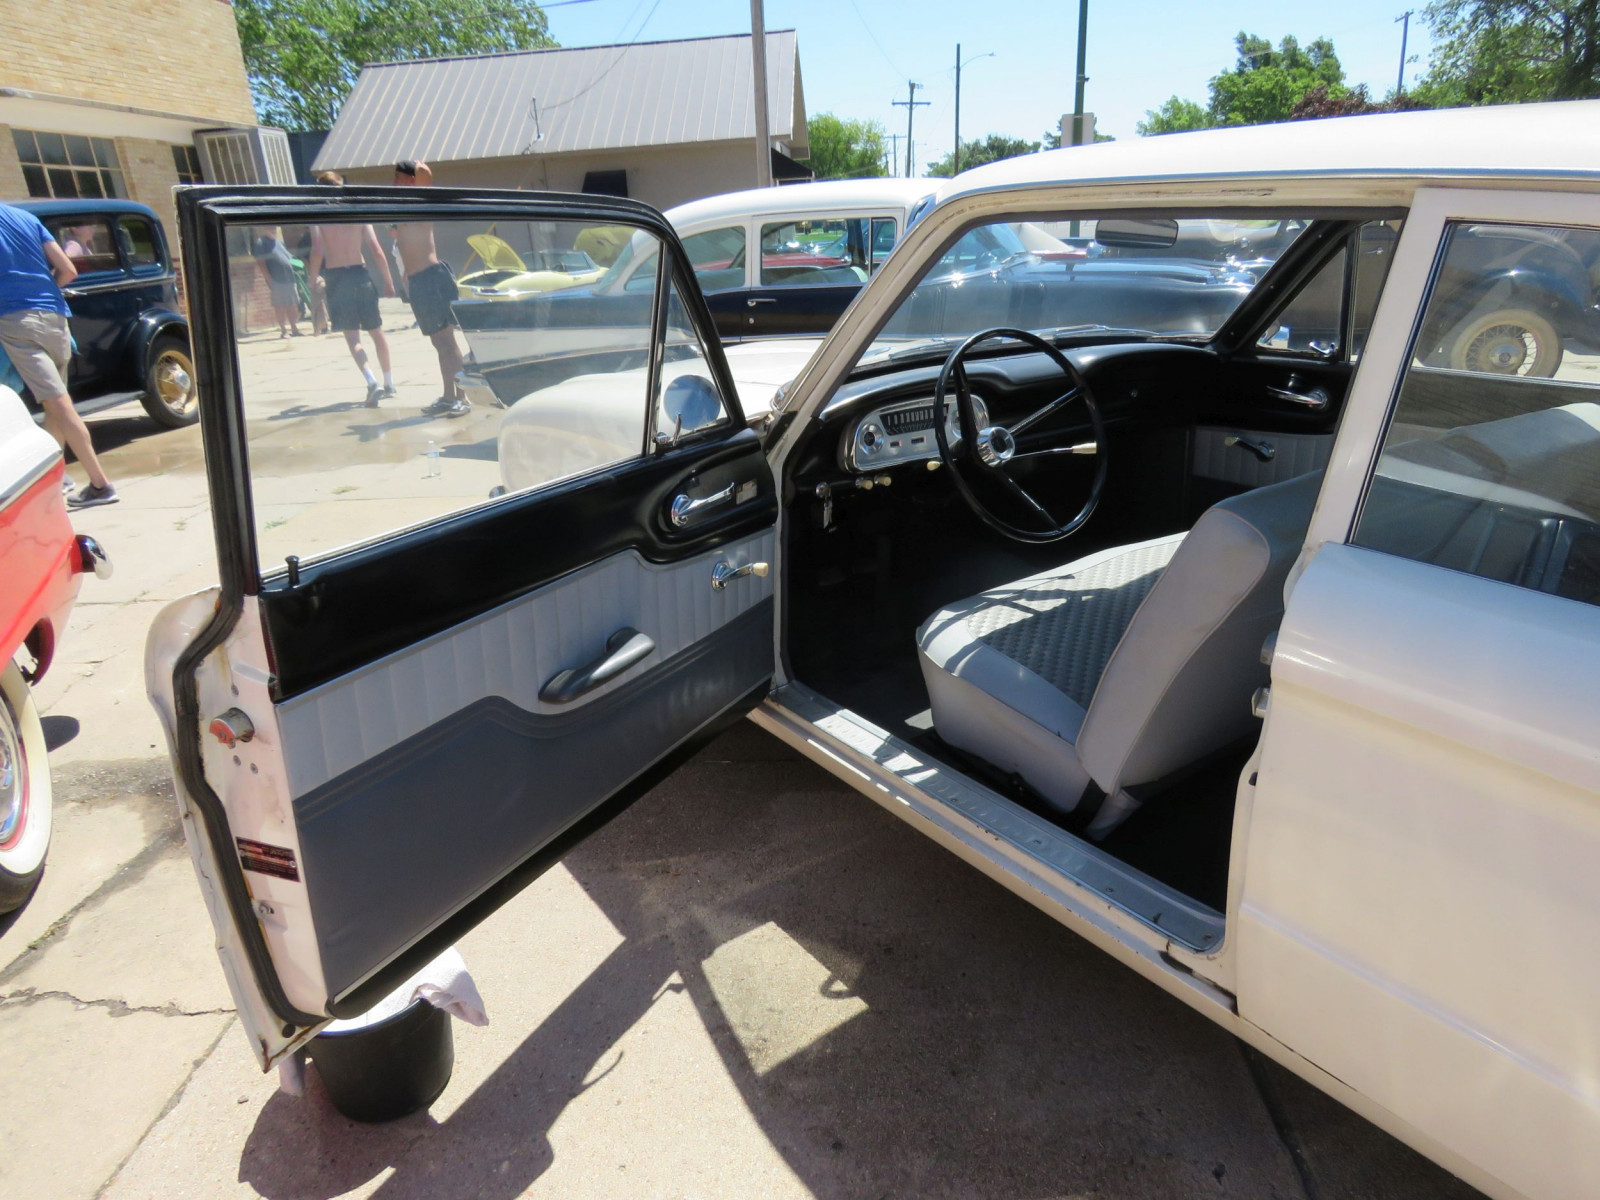 1961 FORD FALCON 2DR SEDAN LESS THAN 10,000 MILES - Image 8